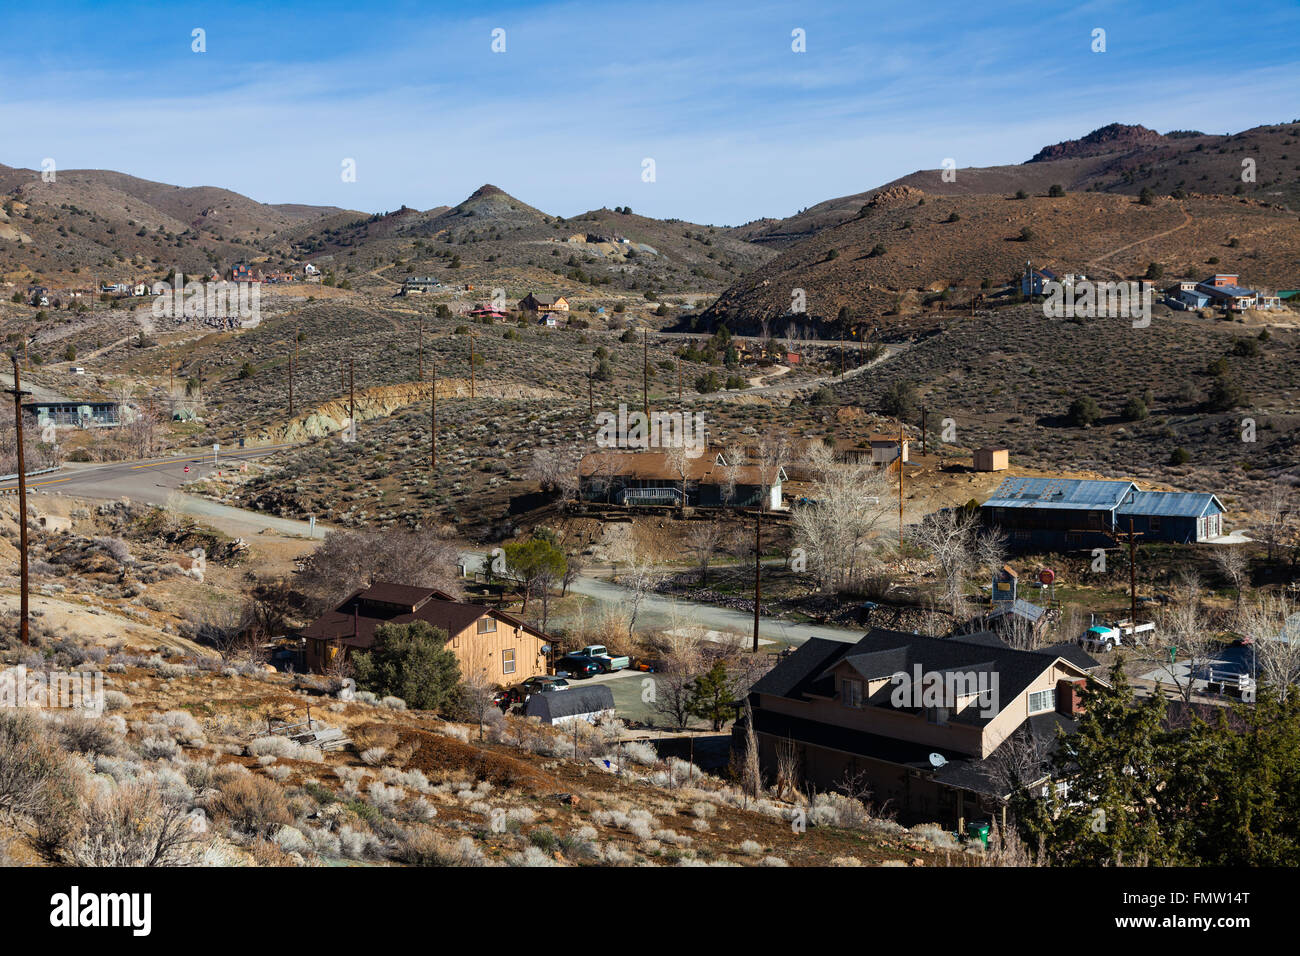 Community of Silver City in the state of Nevada, USA - Stock Image